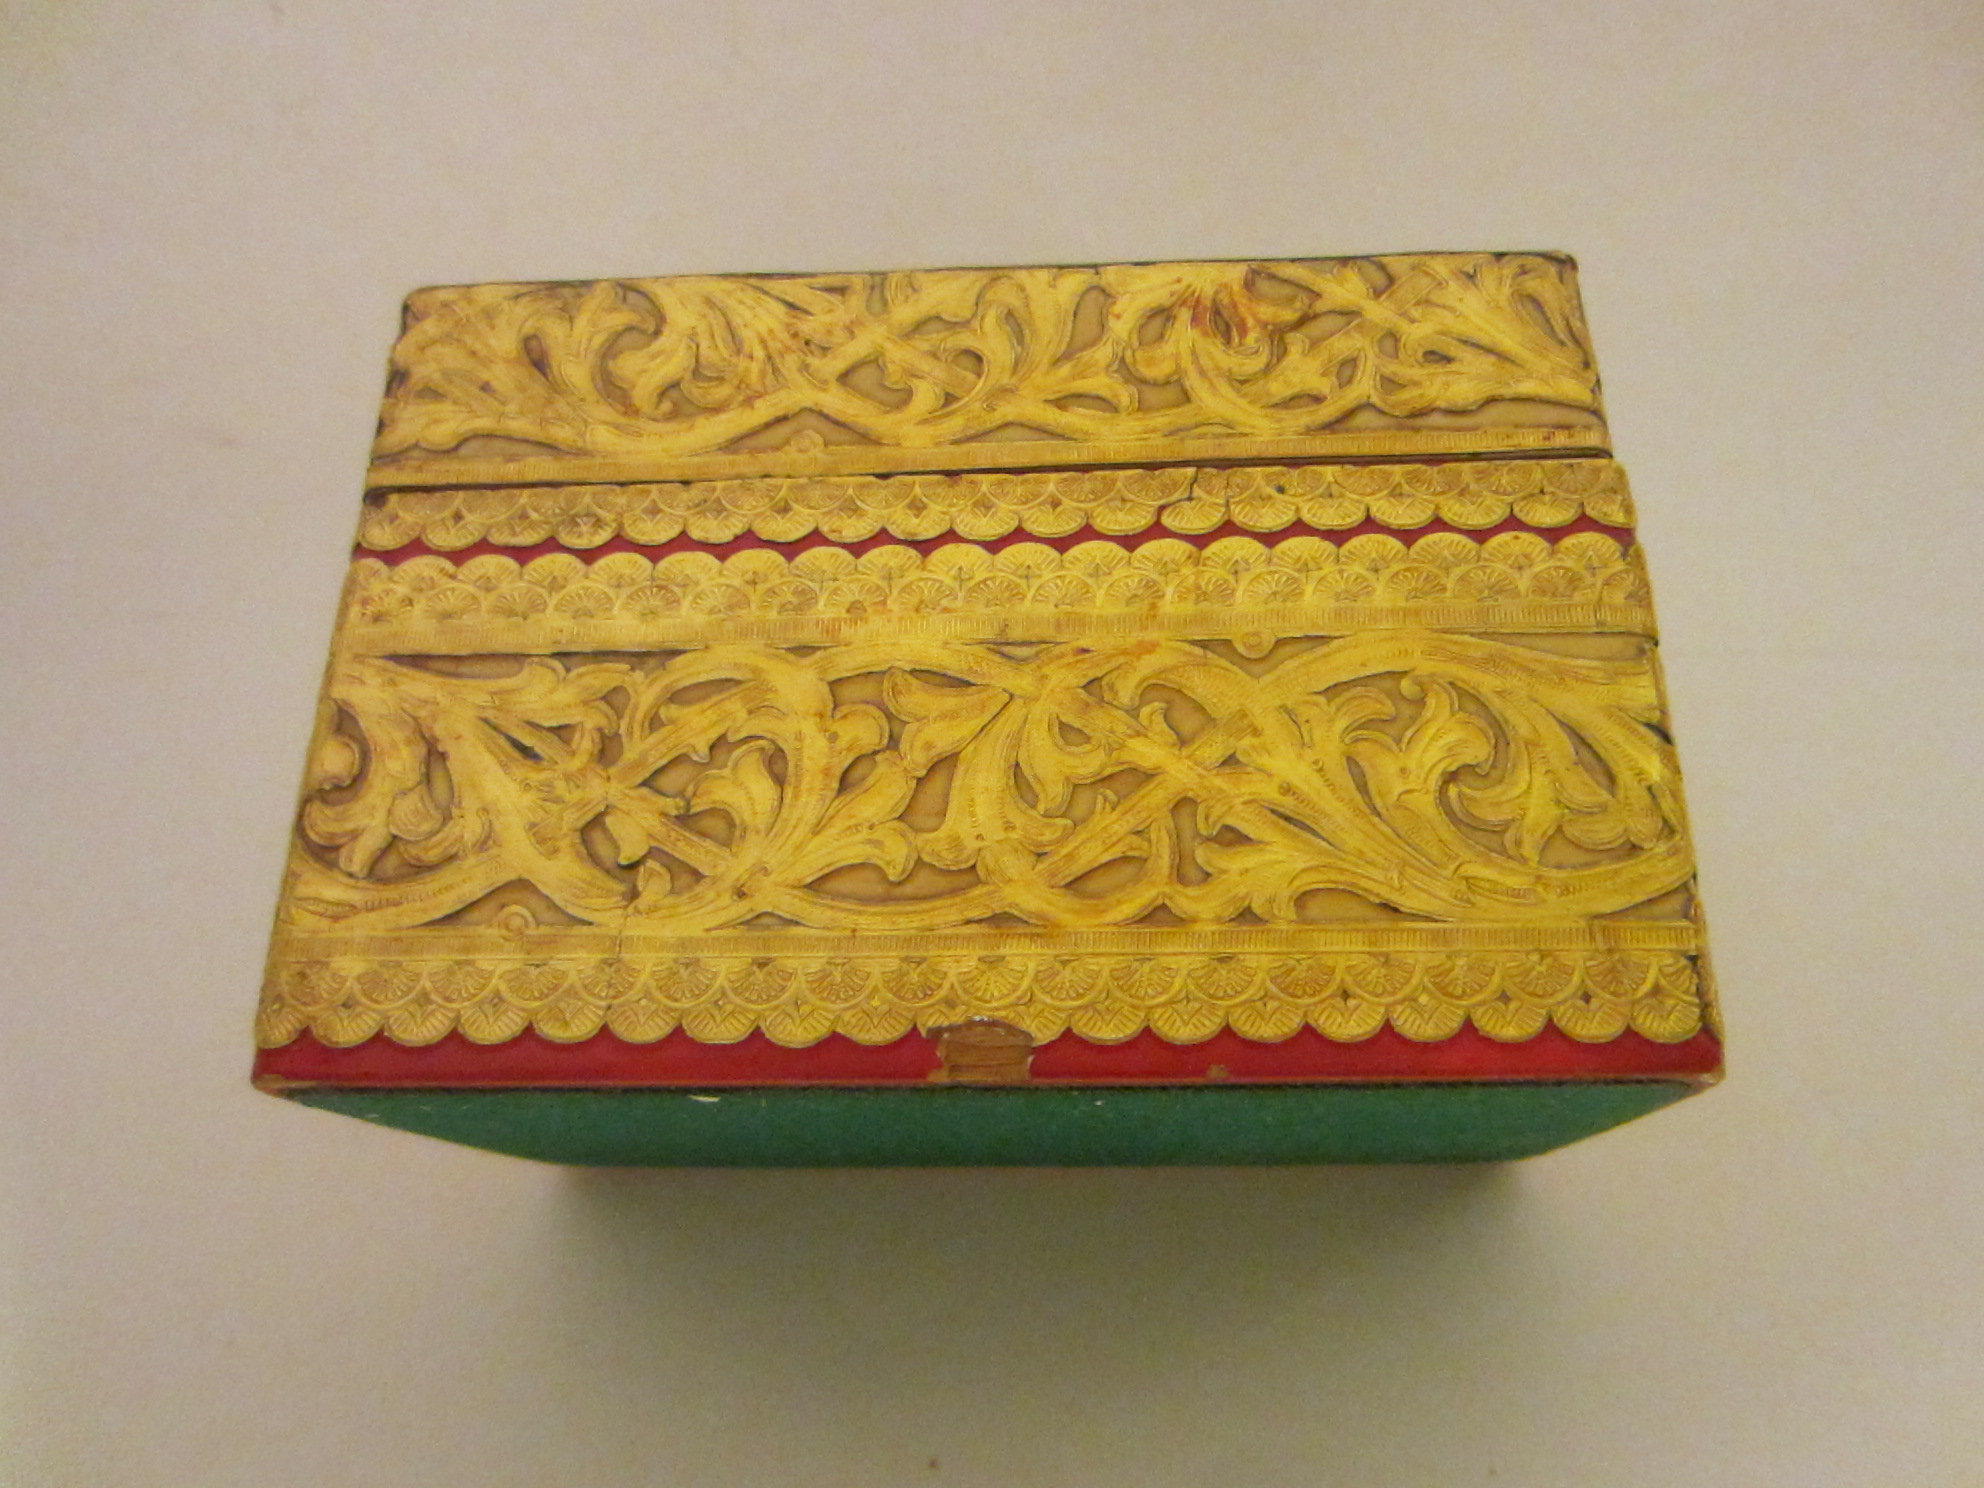 tribal mughal empire style figurative sectional card box inlaid